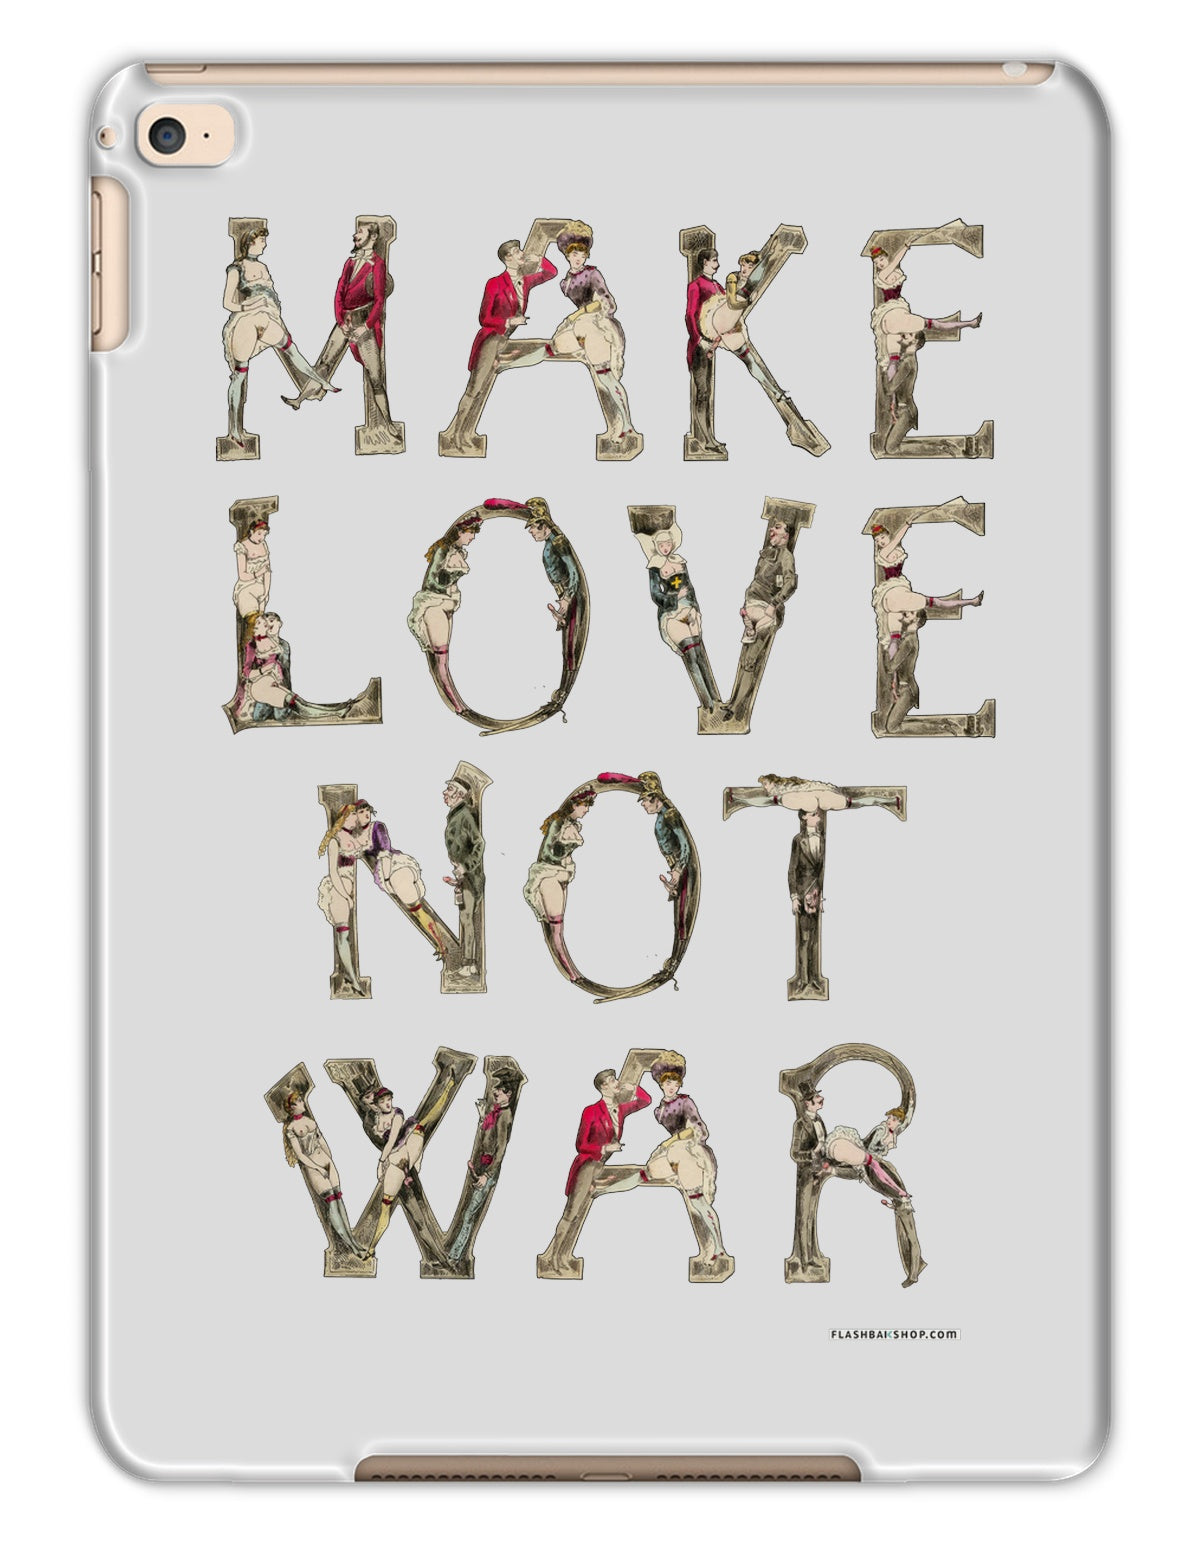 Make Love Not War - iPad Tablet case featuring letters from Joseph Apoux's erotica alphabet of 1880